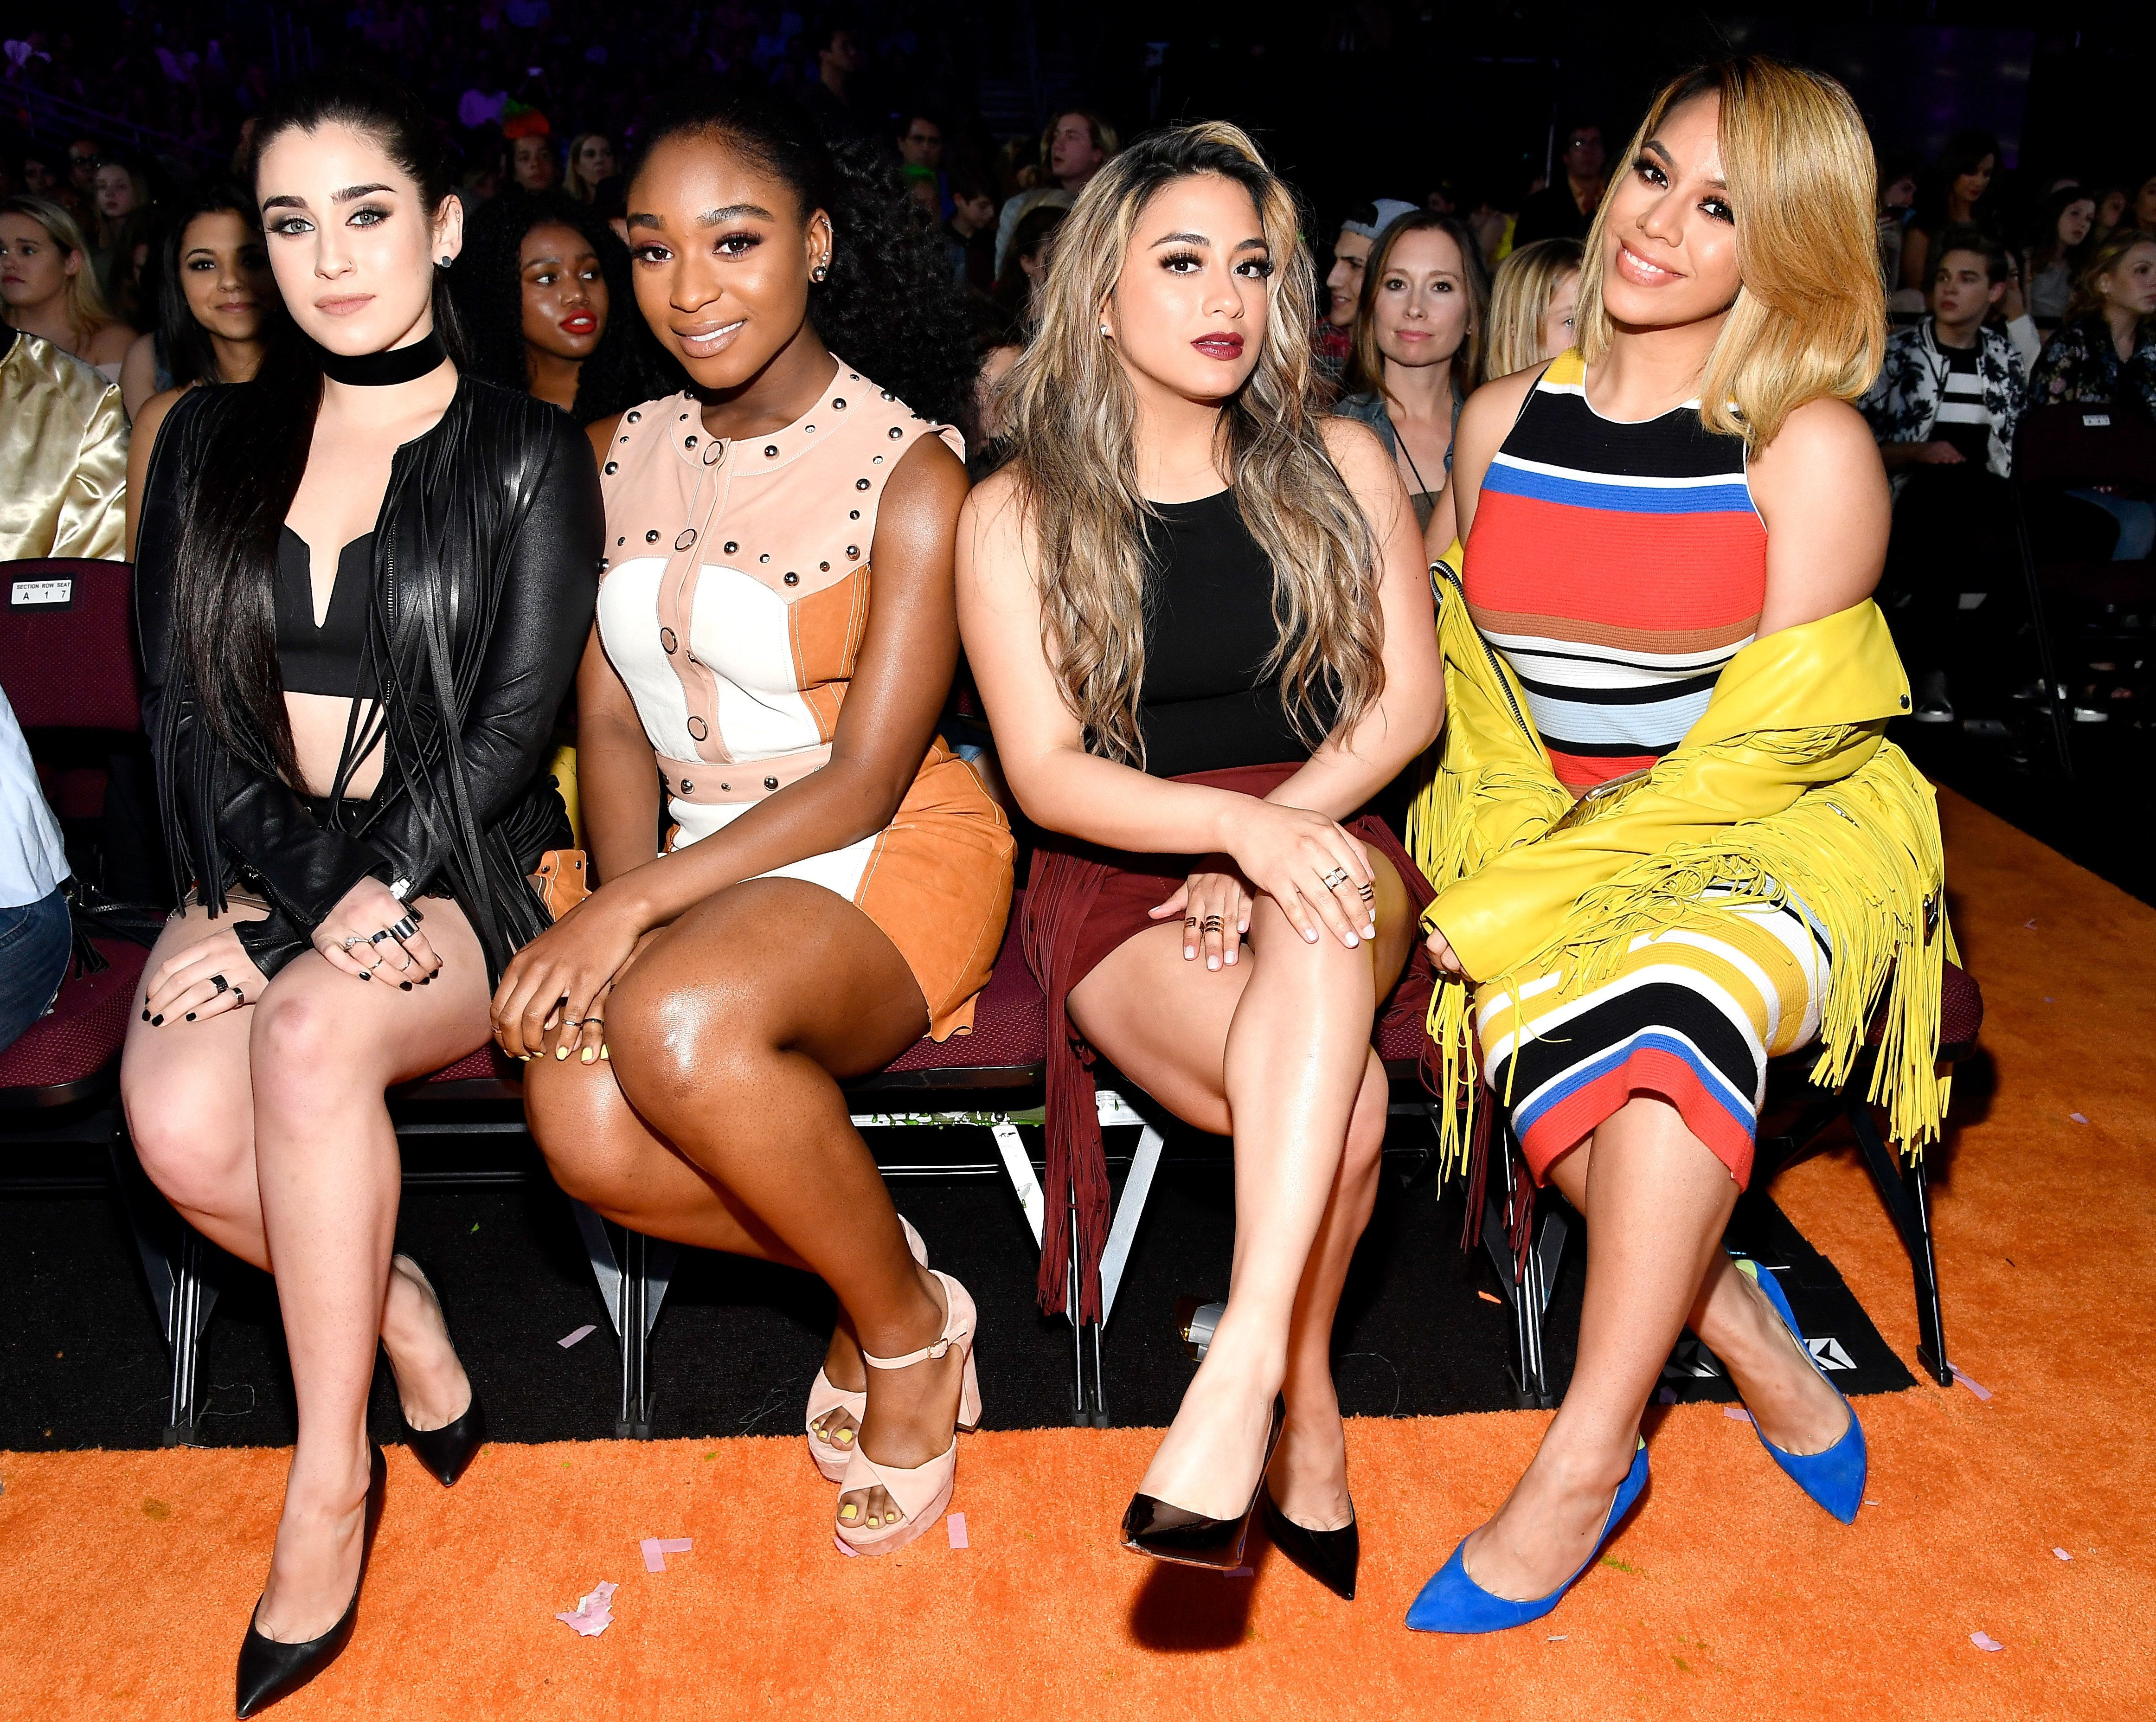 LOS ANGELES, CA - MARCH 11:  (L-R) Singers Lauren Jauregui, Normani Kordei, Ally Brooke, and Dinah Jane of Fifth Harmony in the audience at Nickelodeon's 2017 Kids' Choice Awards at USC Galen Center on March 11, 2017 in Los Angeles, California.  (Photo by Frazer Harrison/KCA2017/Getty Images for Nickelodeon)